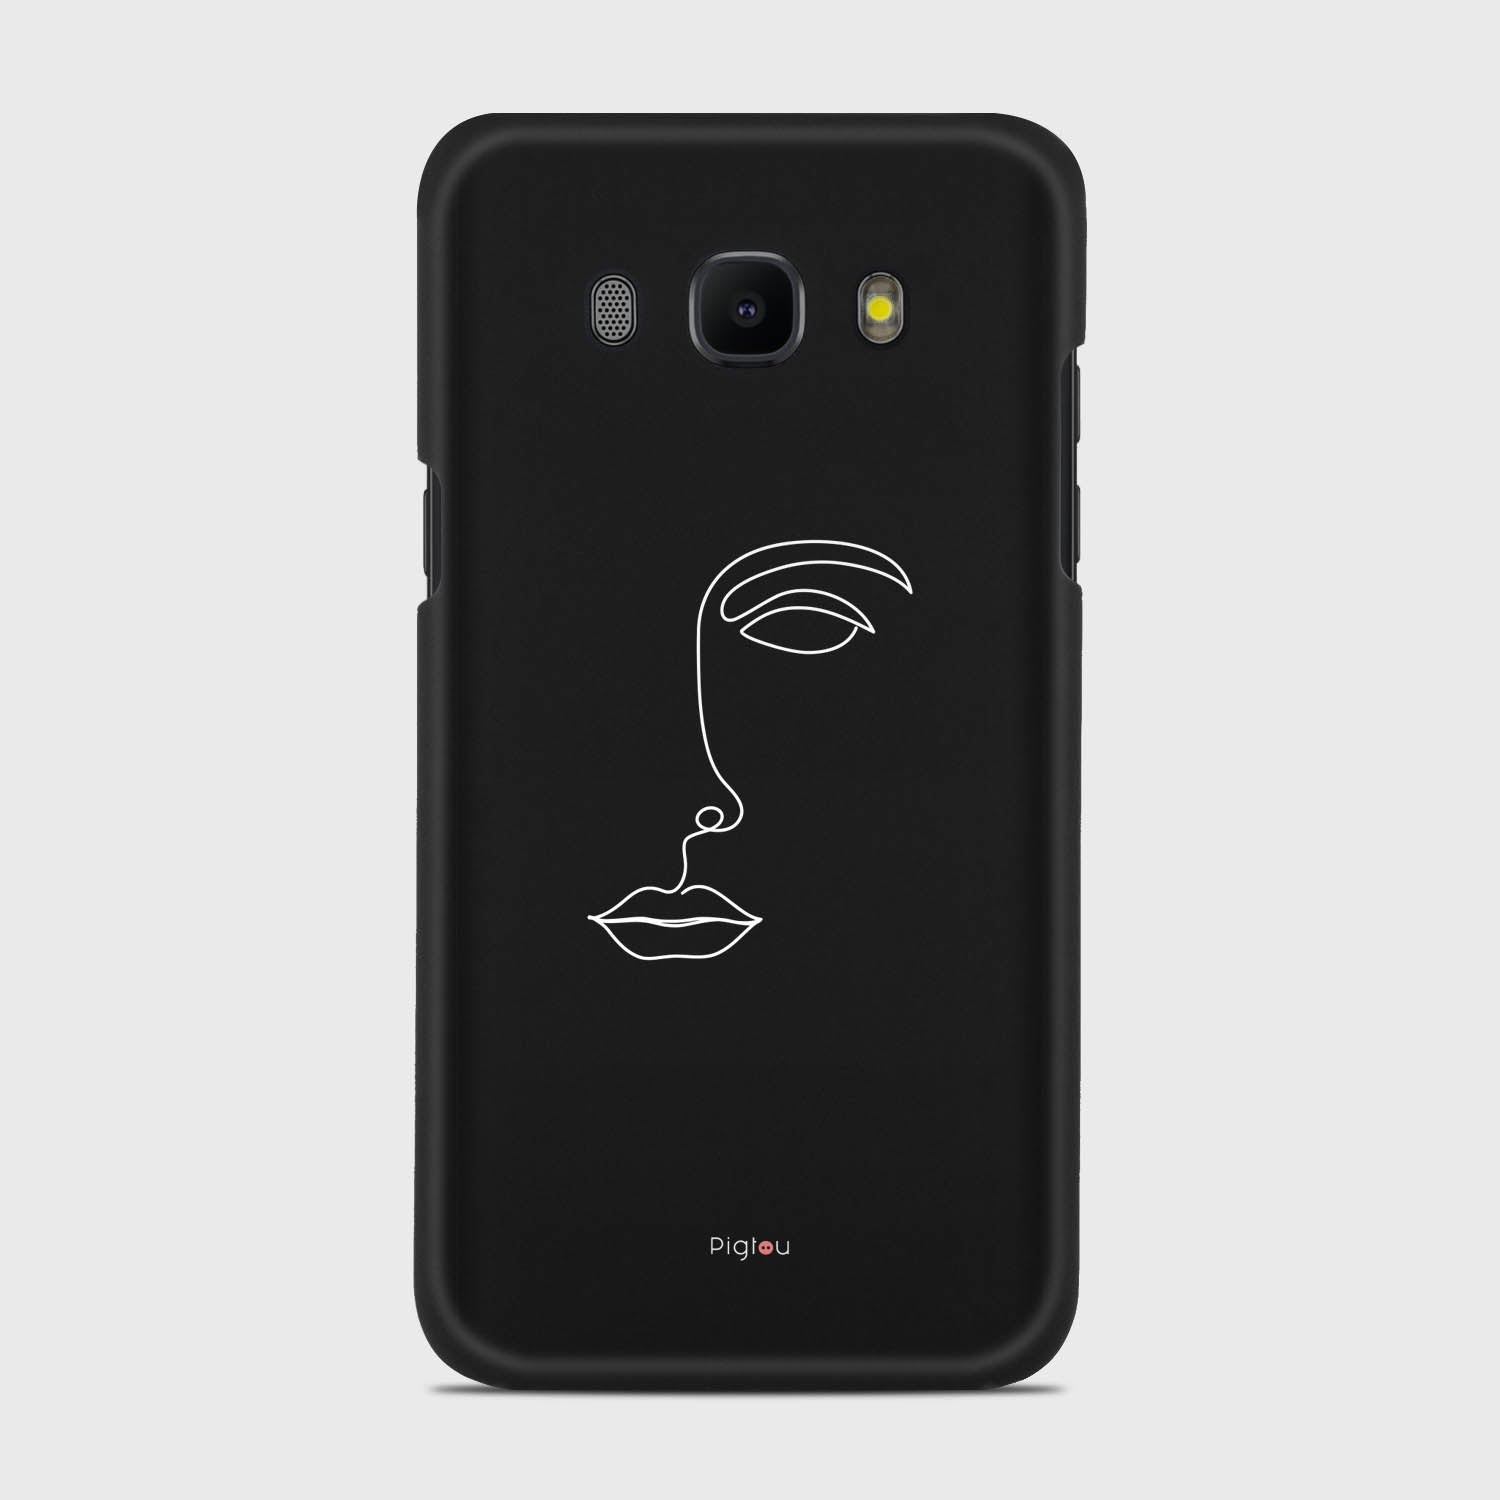 SILHOUETTE FACE Samsung Galaxy J5 cases | Pigtou